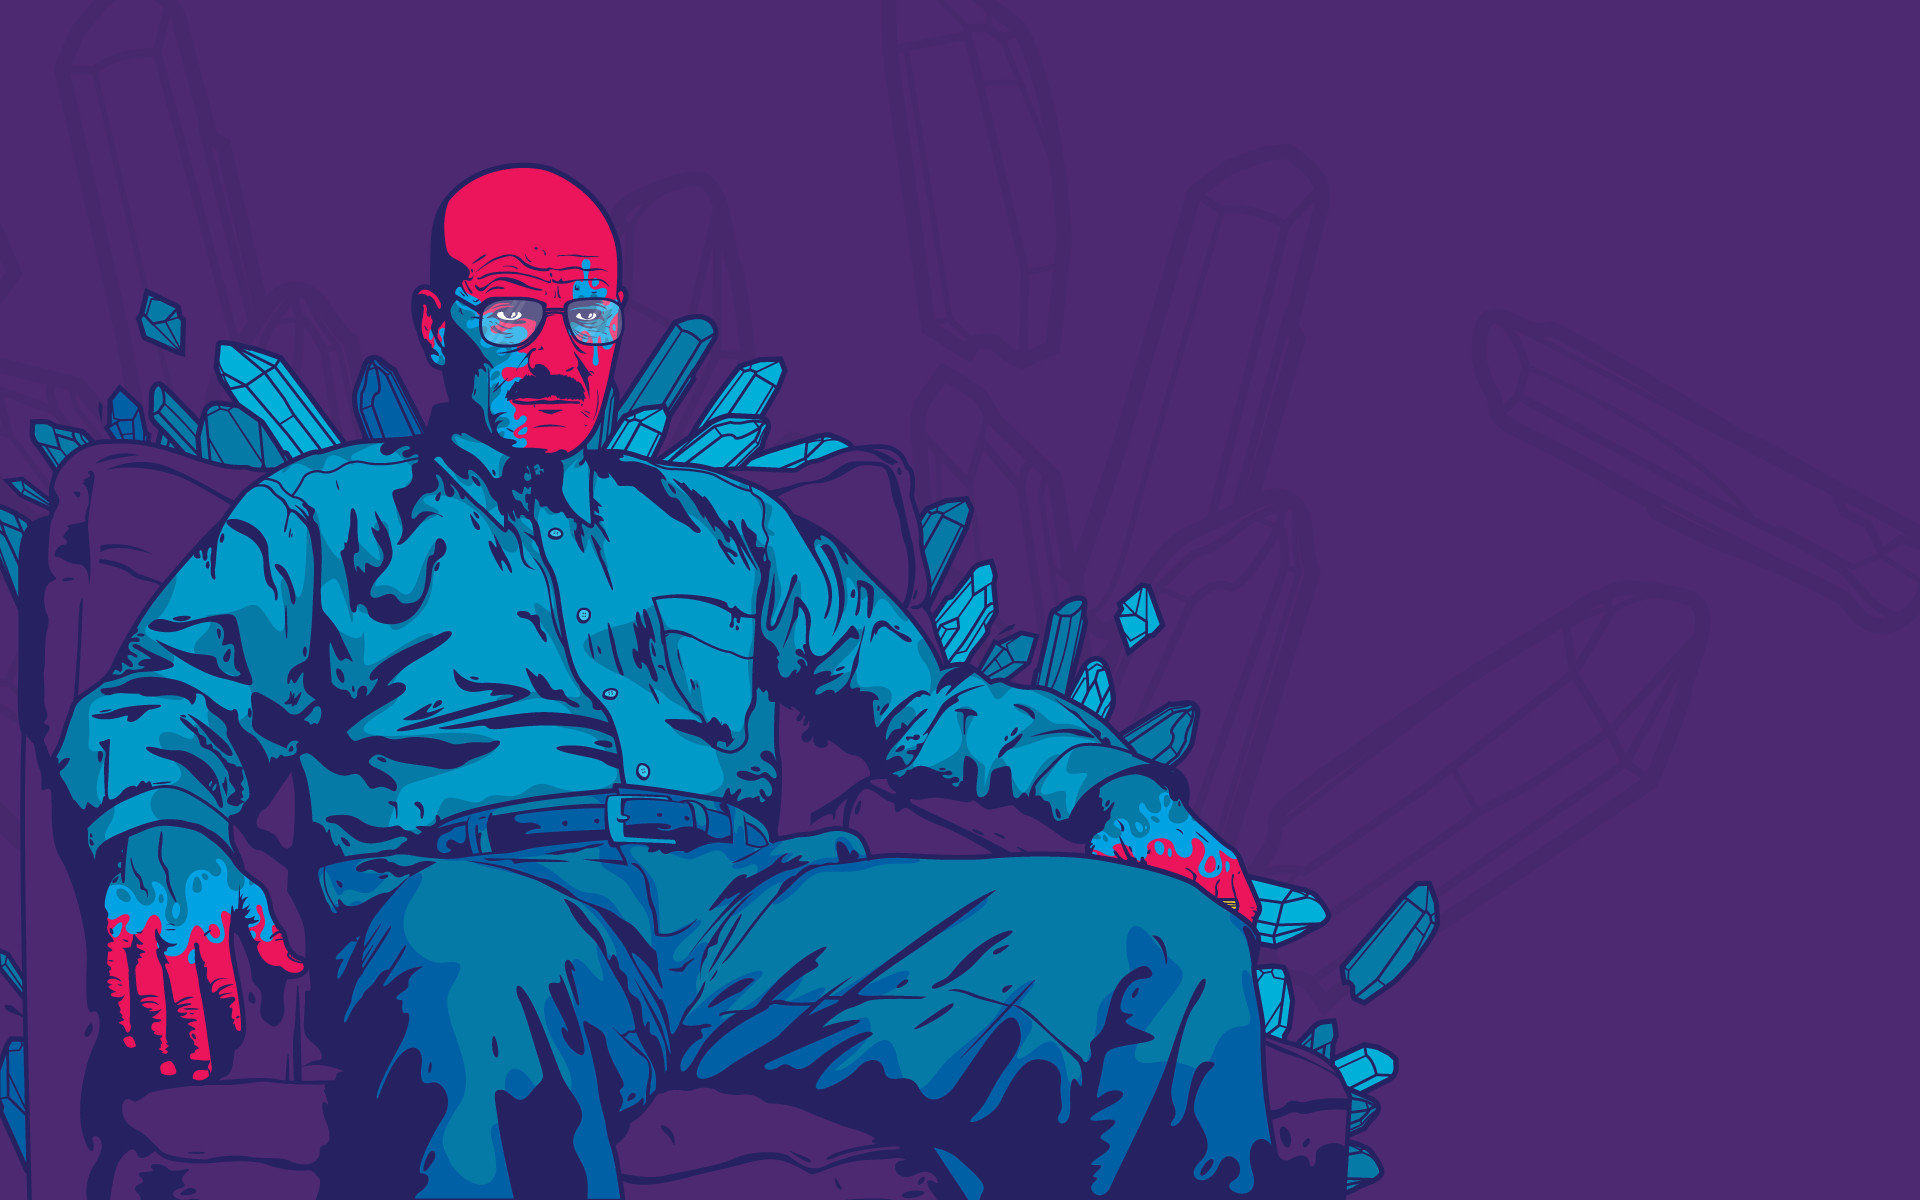 1920x1200 Breaking Bad Computer Wallpapers, Desktop Backgrounds |  .